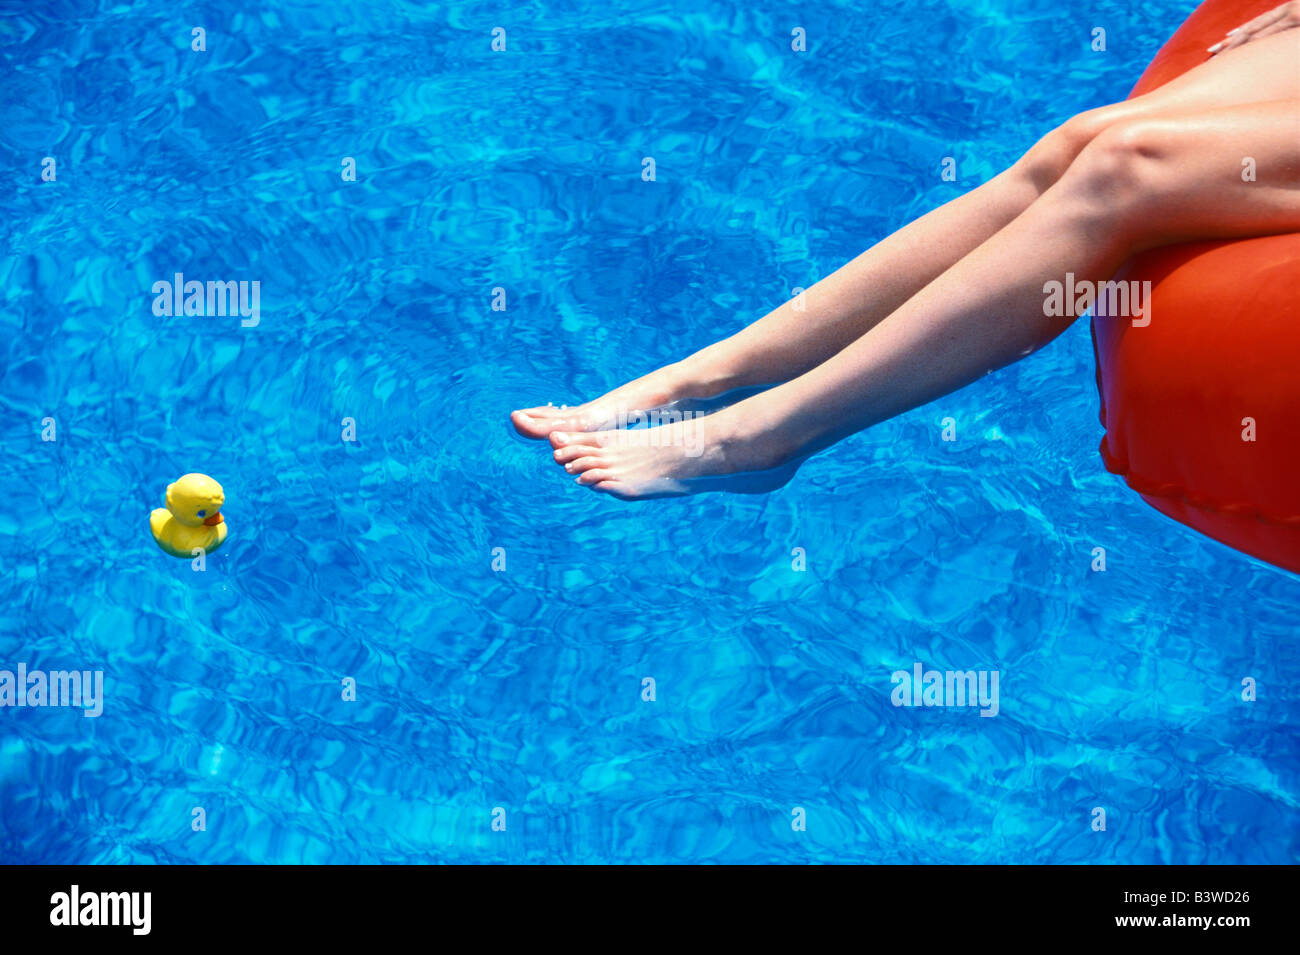 Woman s legs and her rubber ducky in a swimming pool - Stock Image